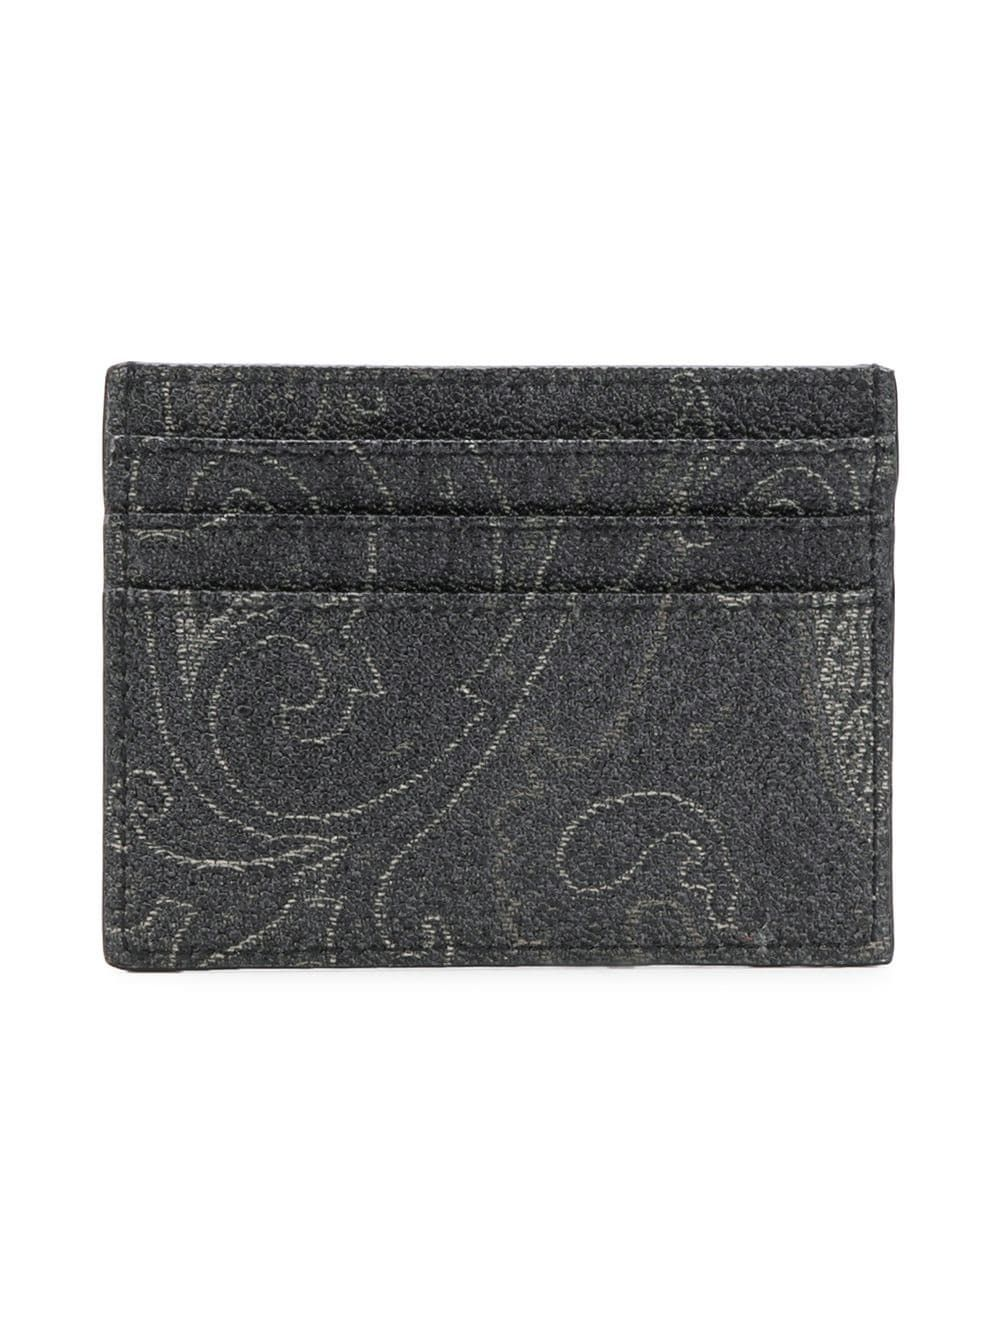 ETRO MEN'S 0H7698007001 GREY LEATHER CARD HOLDER